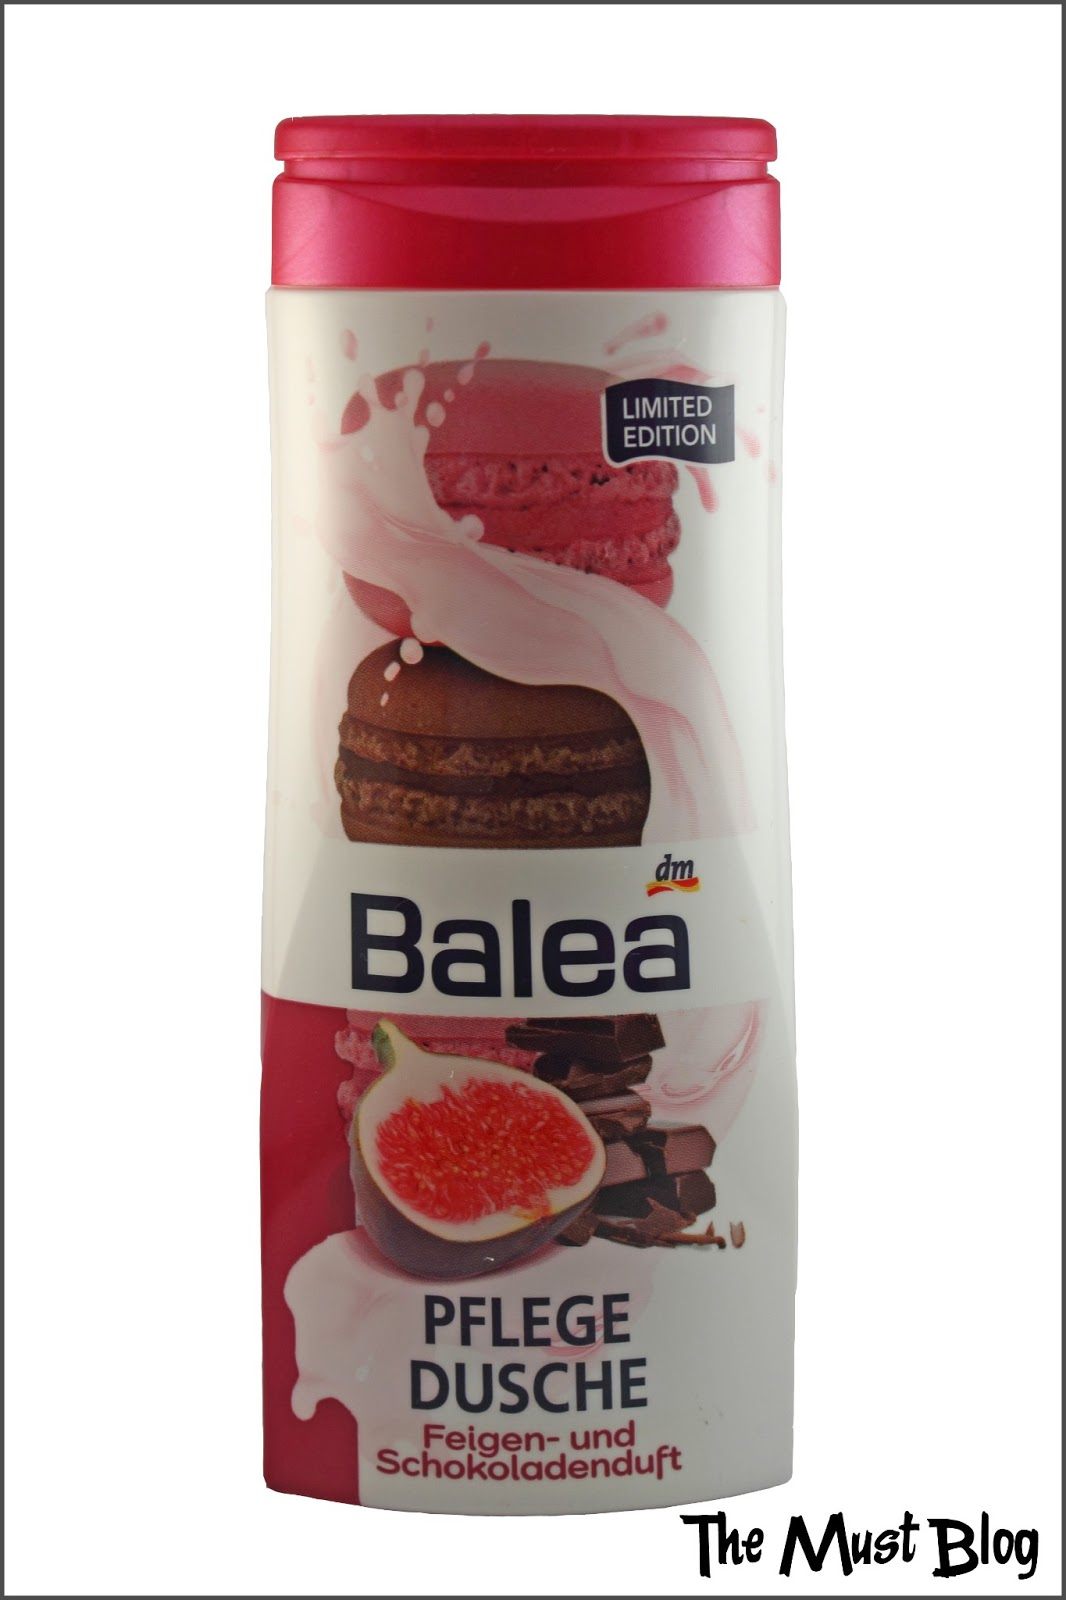 the must blog review balea shower gels limited edition. Black Bedroom Furniture Sets. Home Design Ideas